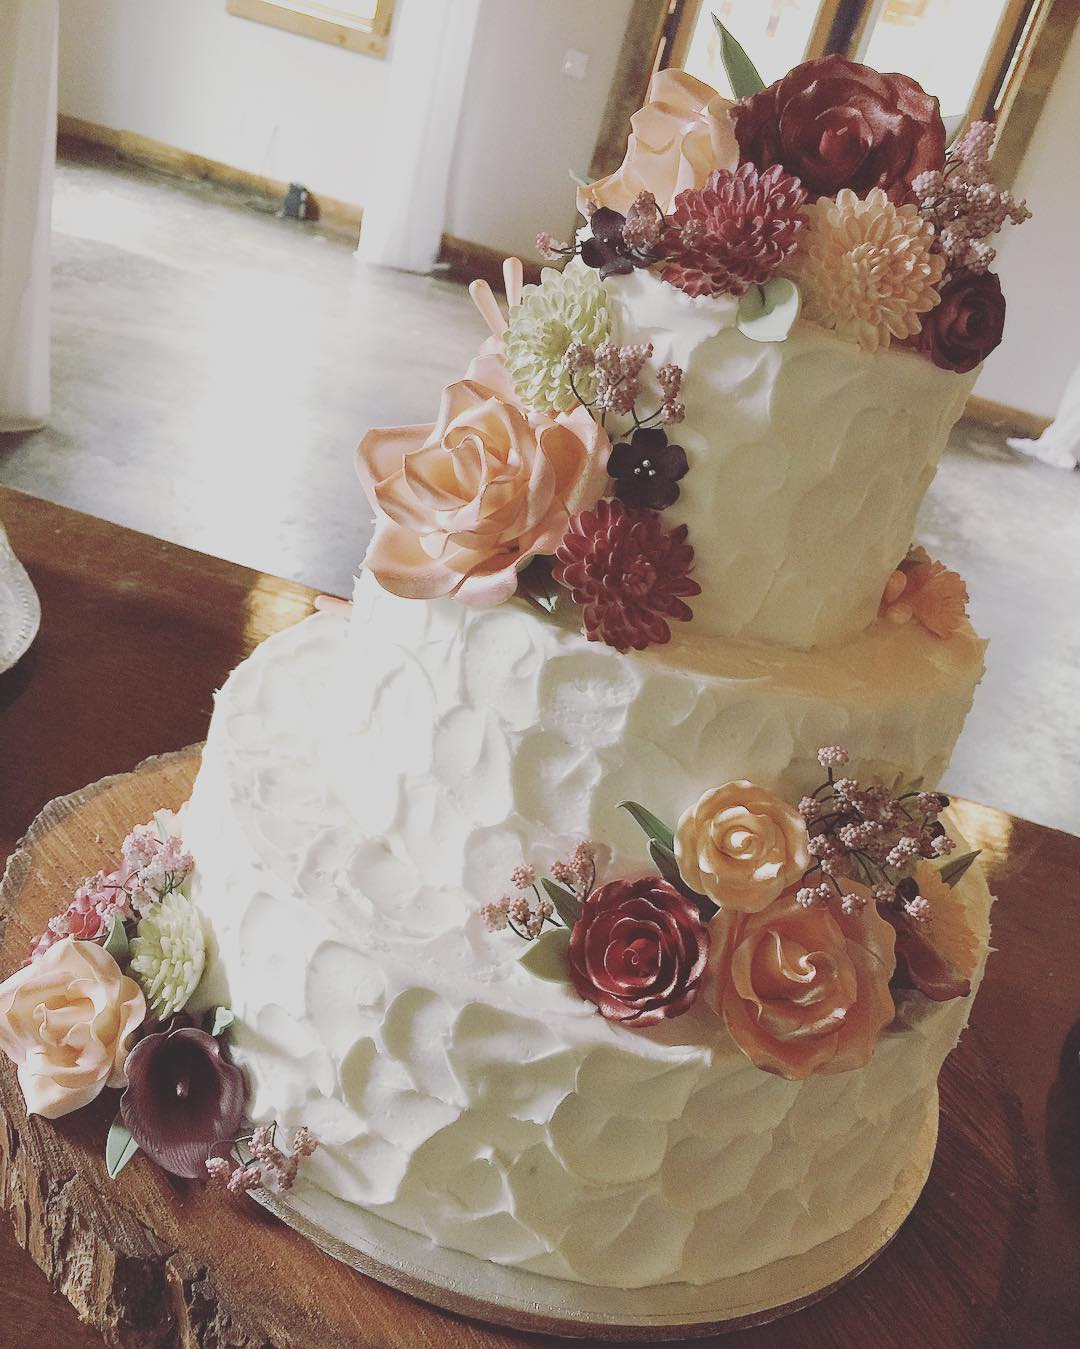 Beautiful Wedding Cakes By The Baking Grounds Bakery Café: Gallery Of Anniversary Cakes By The Baking Grounds Bakery Café